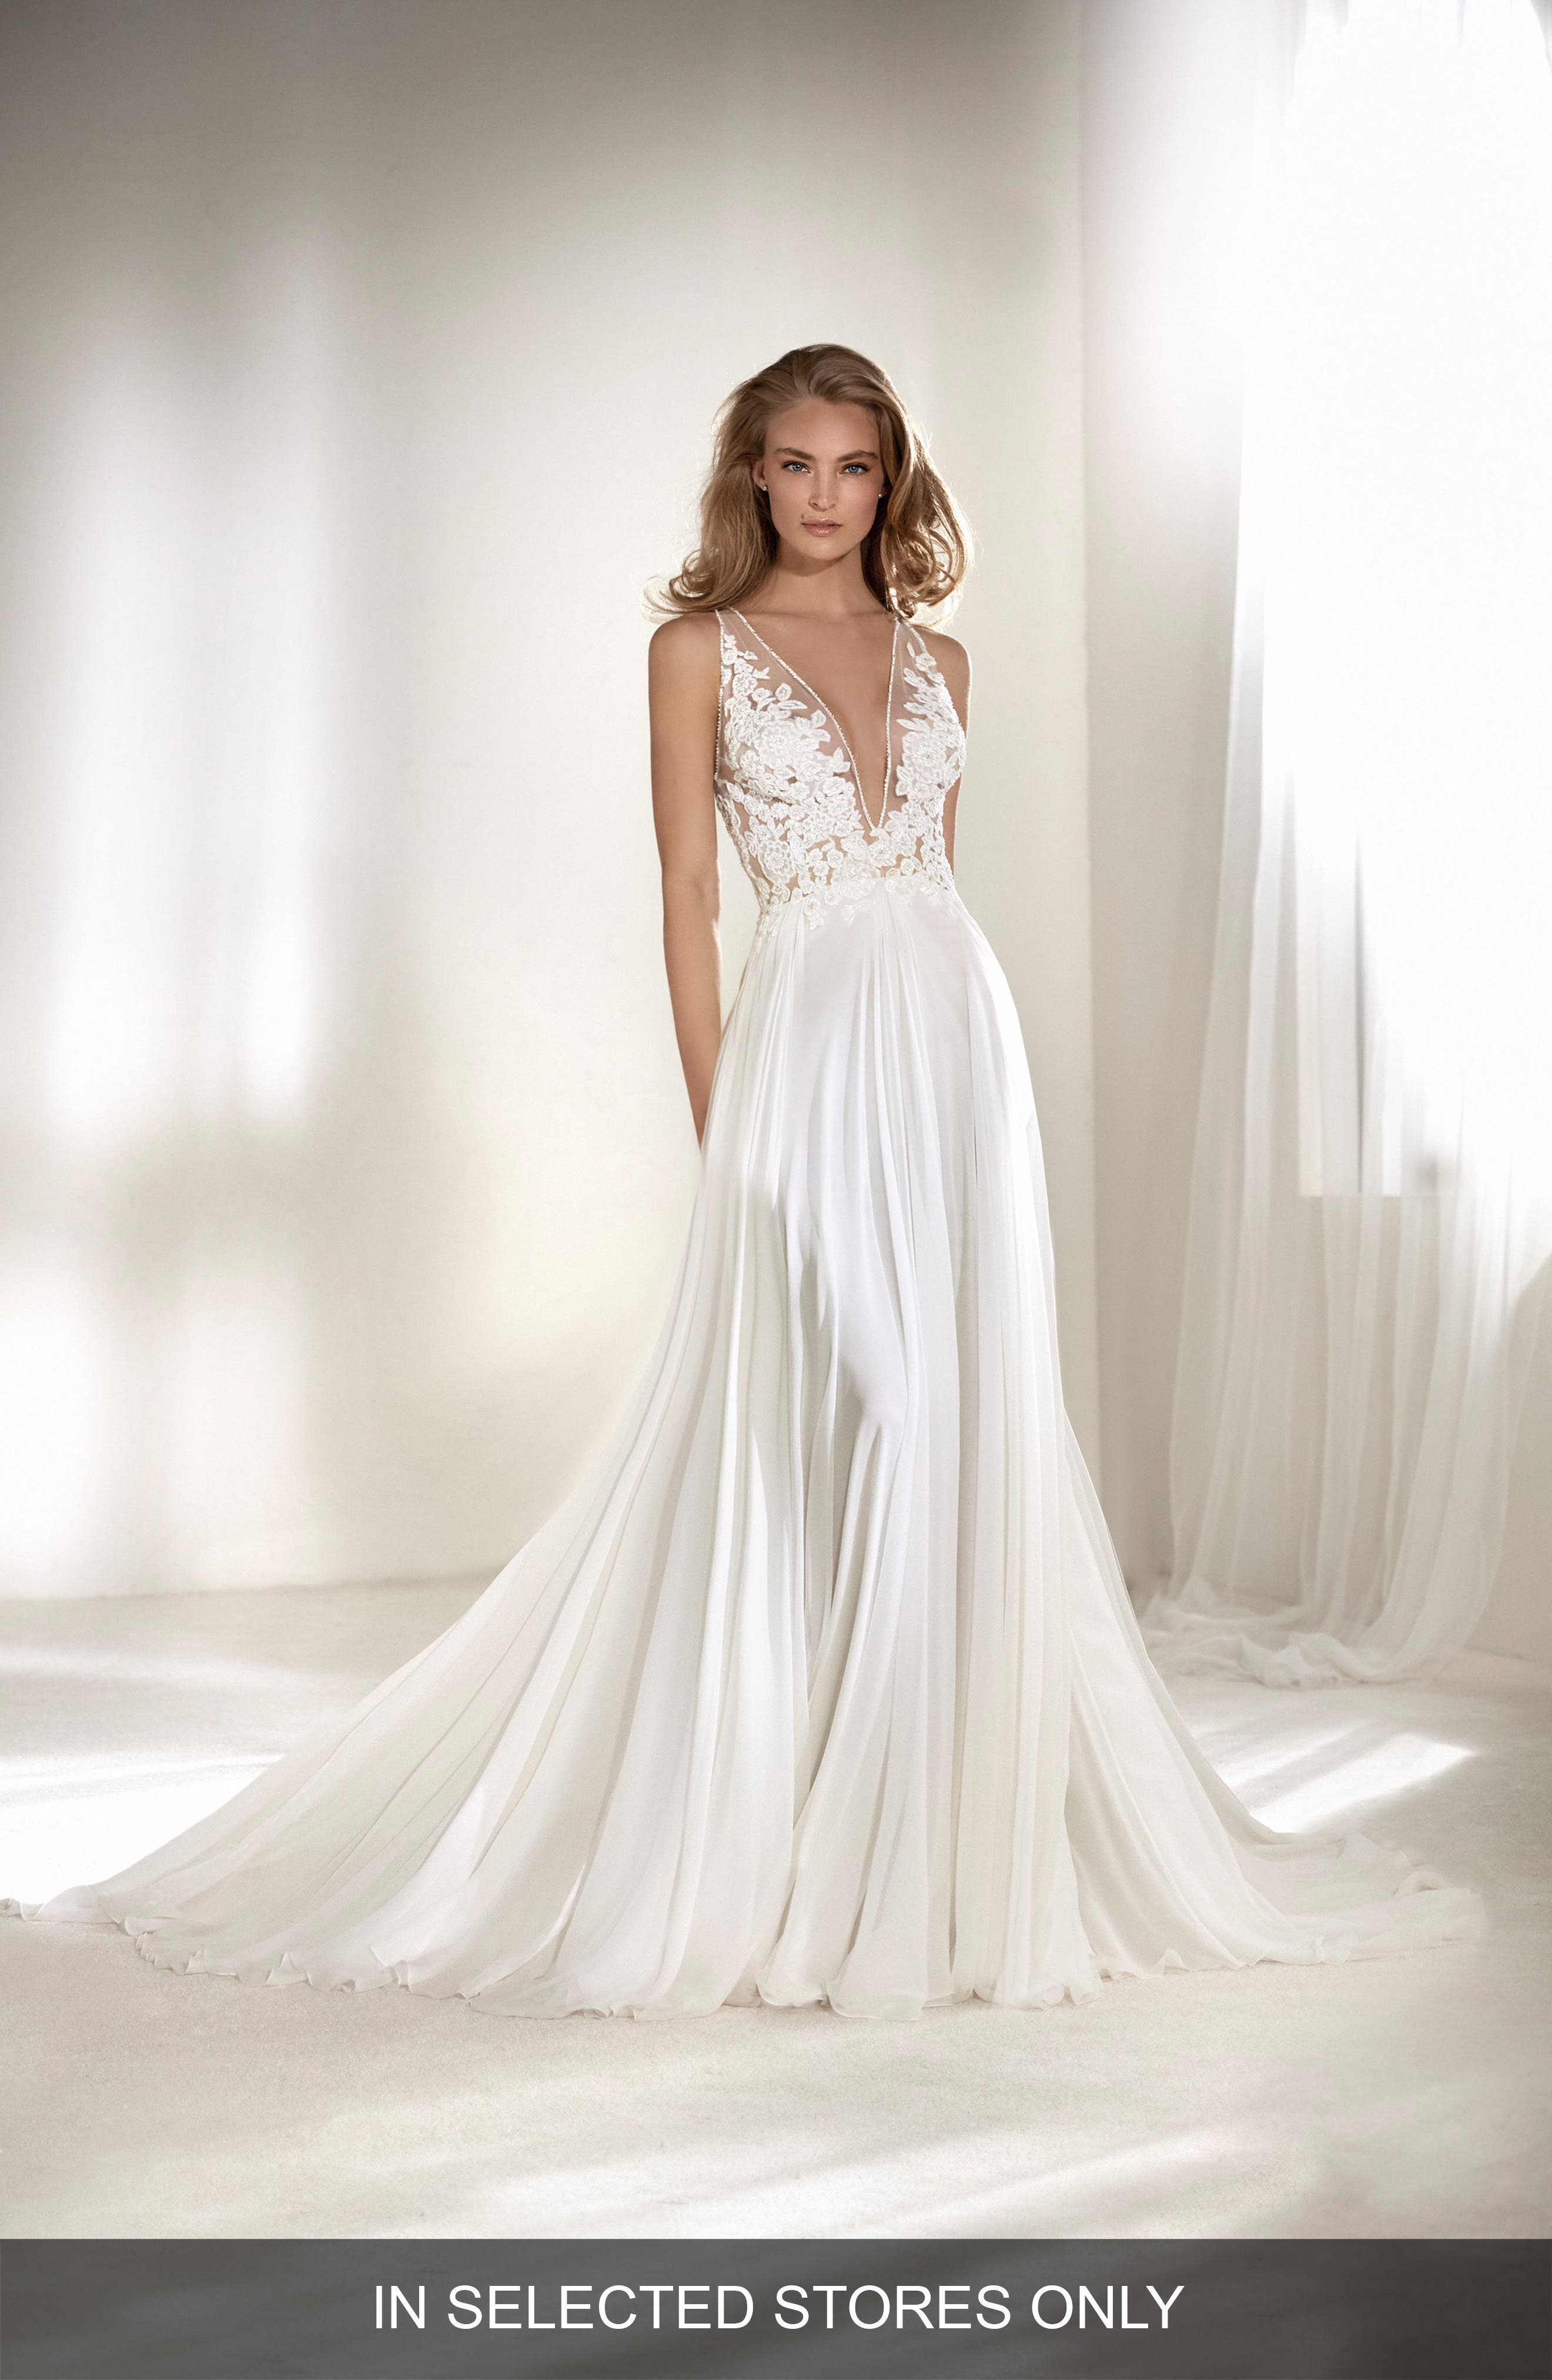 Riado Plunging Lace & Chiffon A-Line Gown,                         Main,                         color, Off White